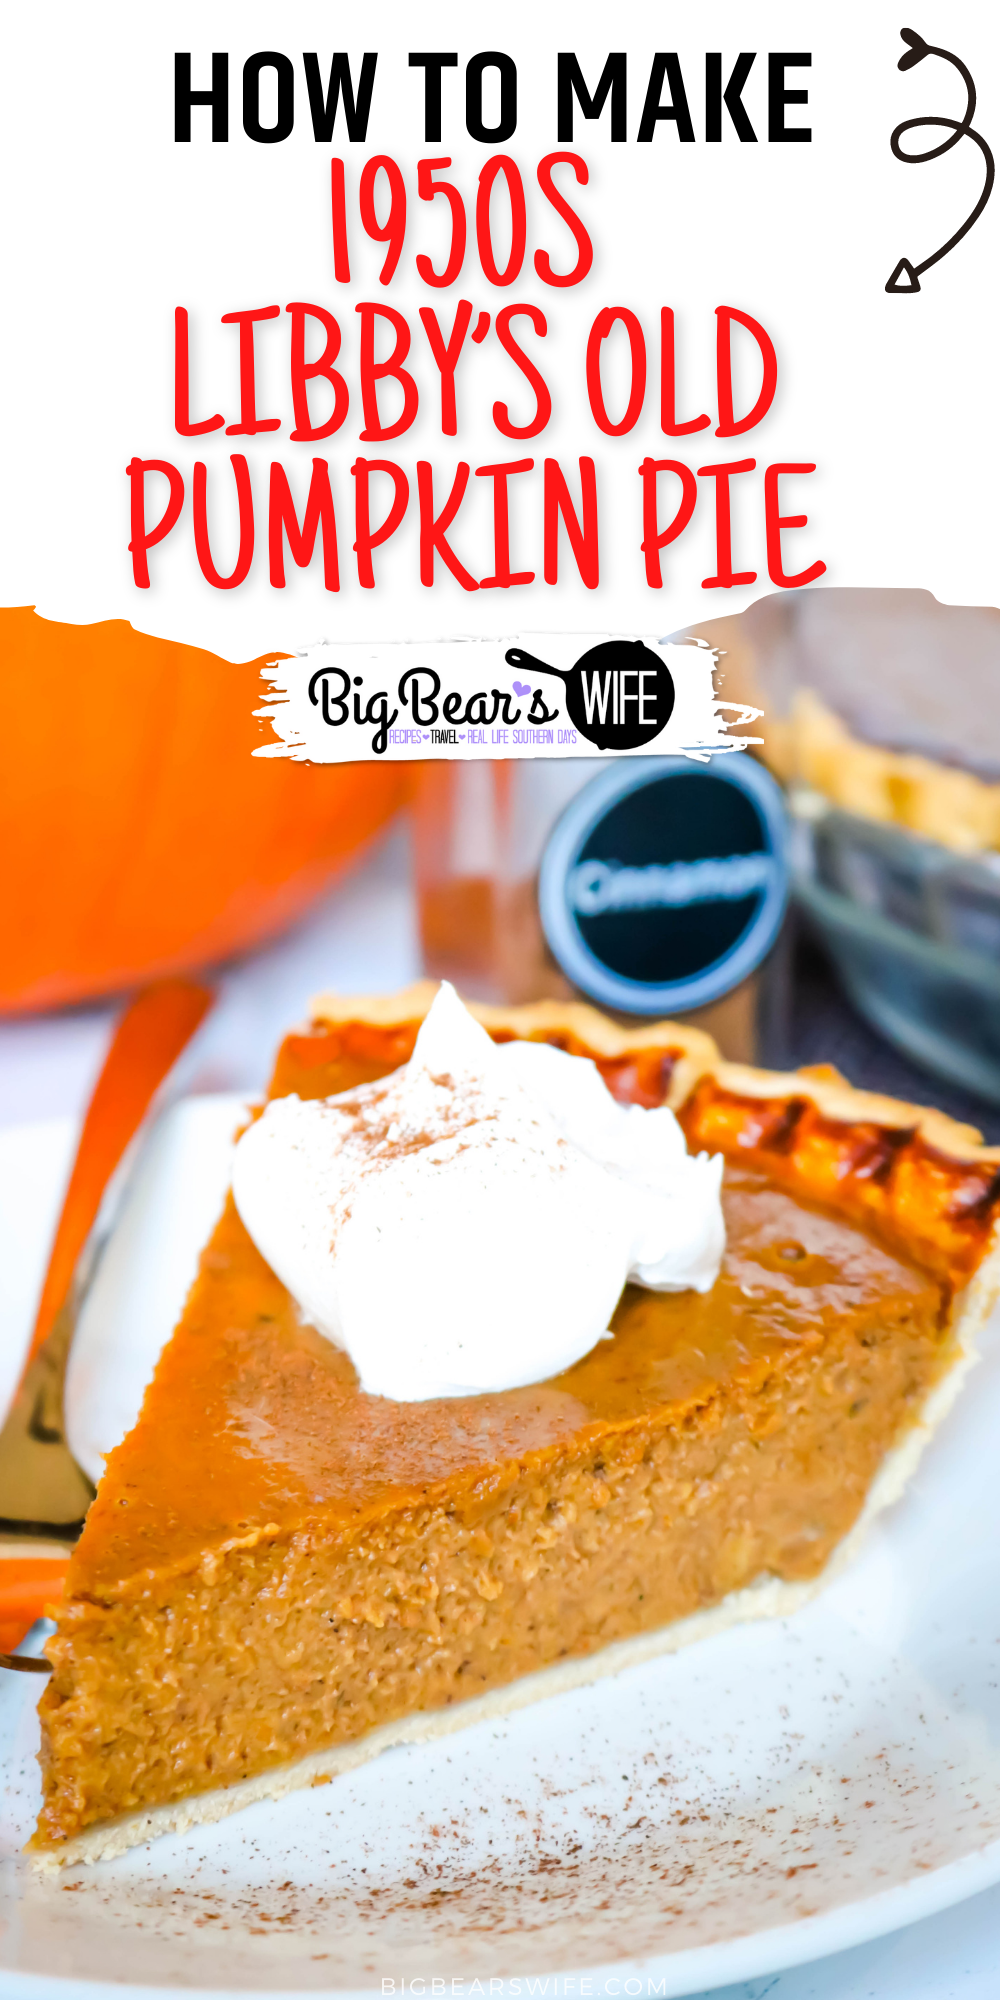 This 1950s Libby's Old Pumpkin Pie is the old fashioned vintage pumpkin pie recipe that was on the back of the can of Libby's Pure Pumpkin from the 1950s until 2019!  via @bigbearswife